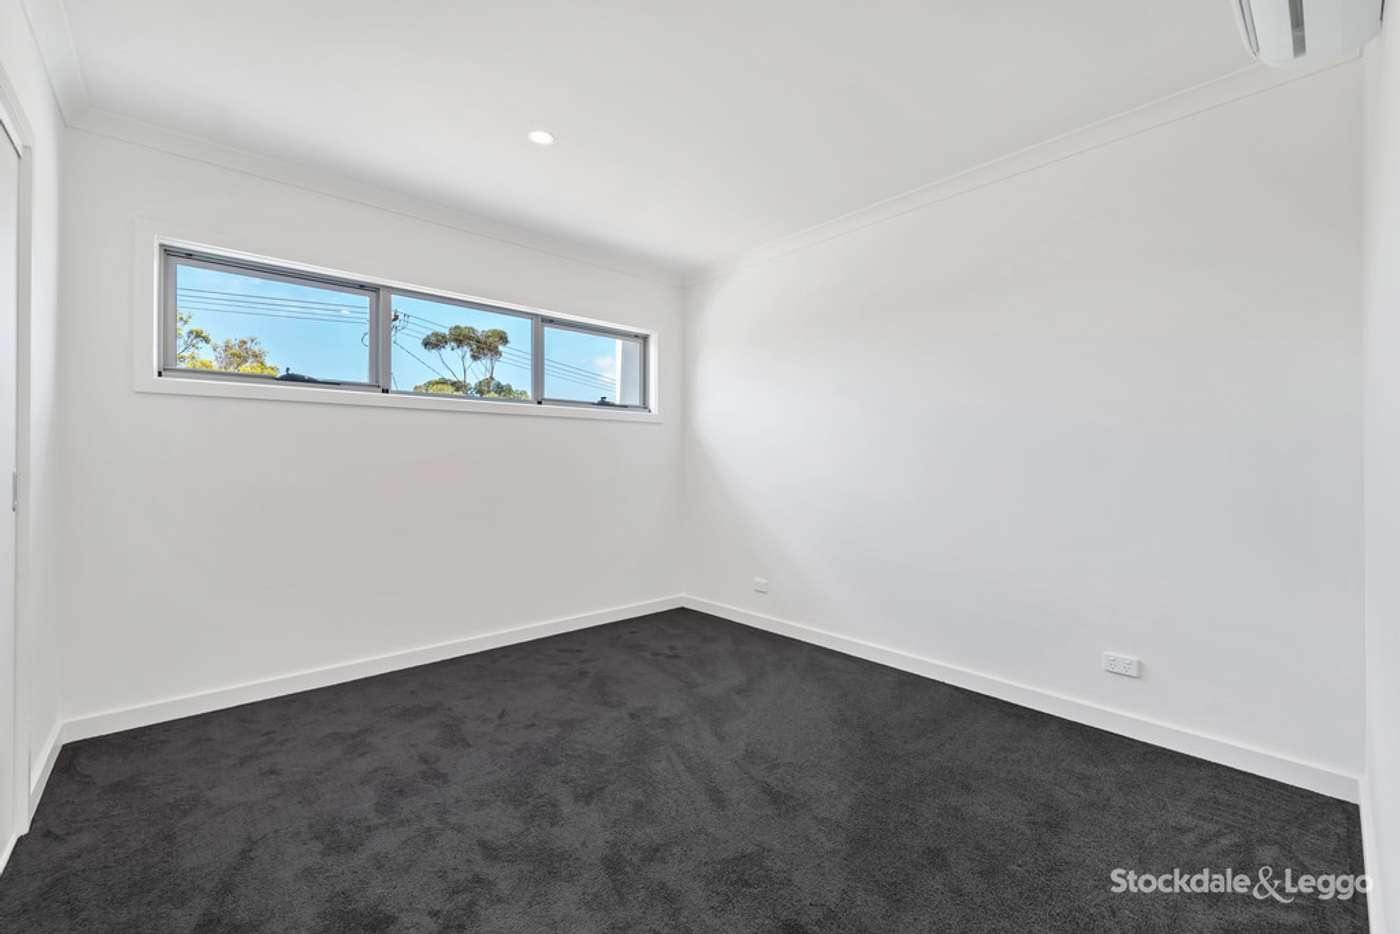 Seventh view of Homely house listing, 2/22 Williams Road, Laverton VIC 3028